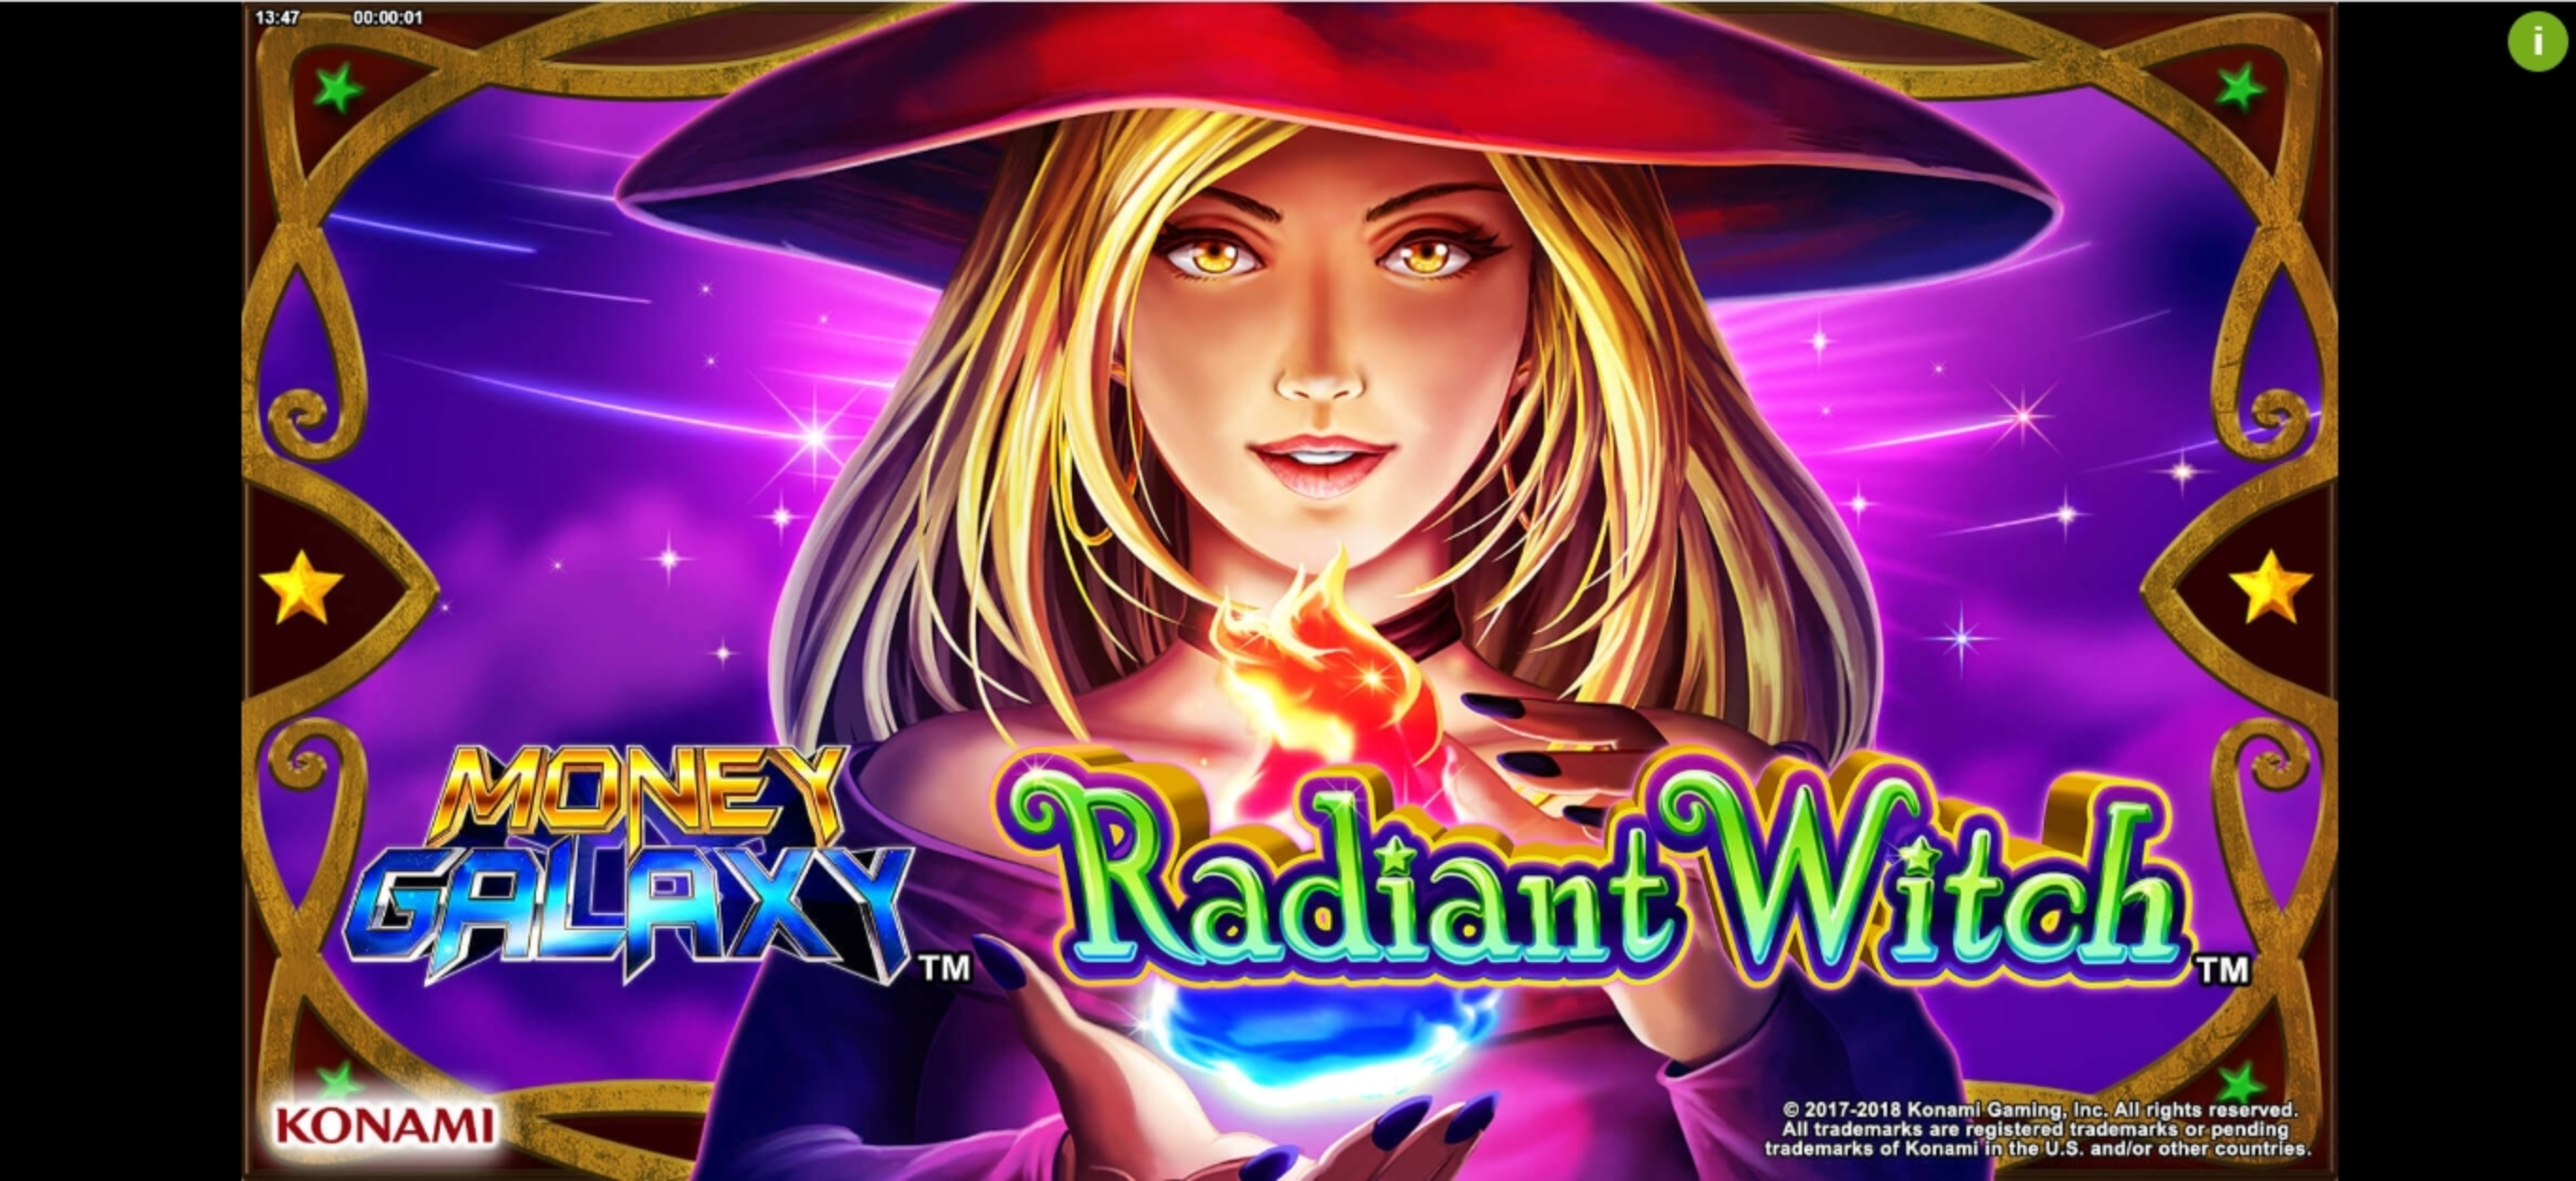 Play Money Galaxy Radiant Witch Free Casino Slot Game by Konami Gaming